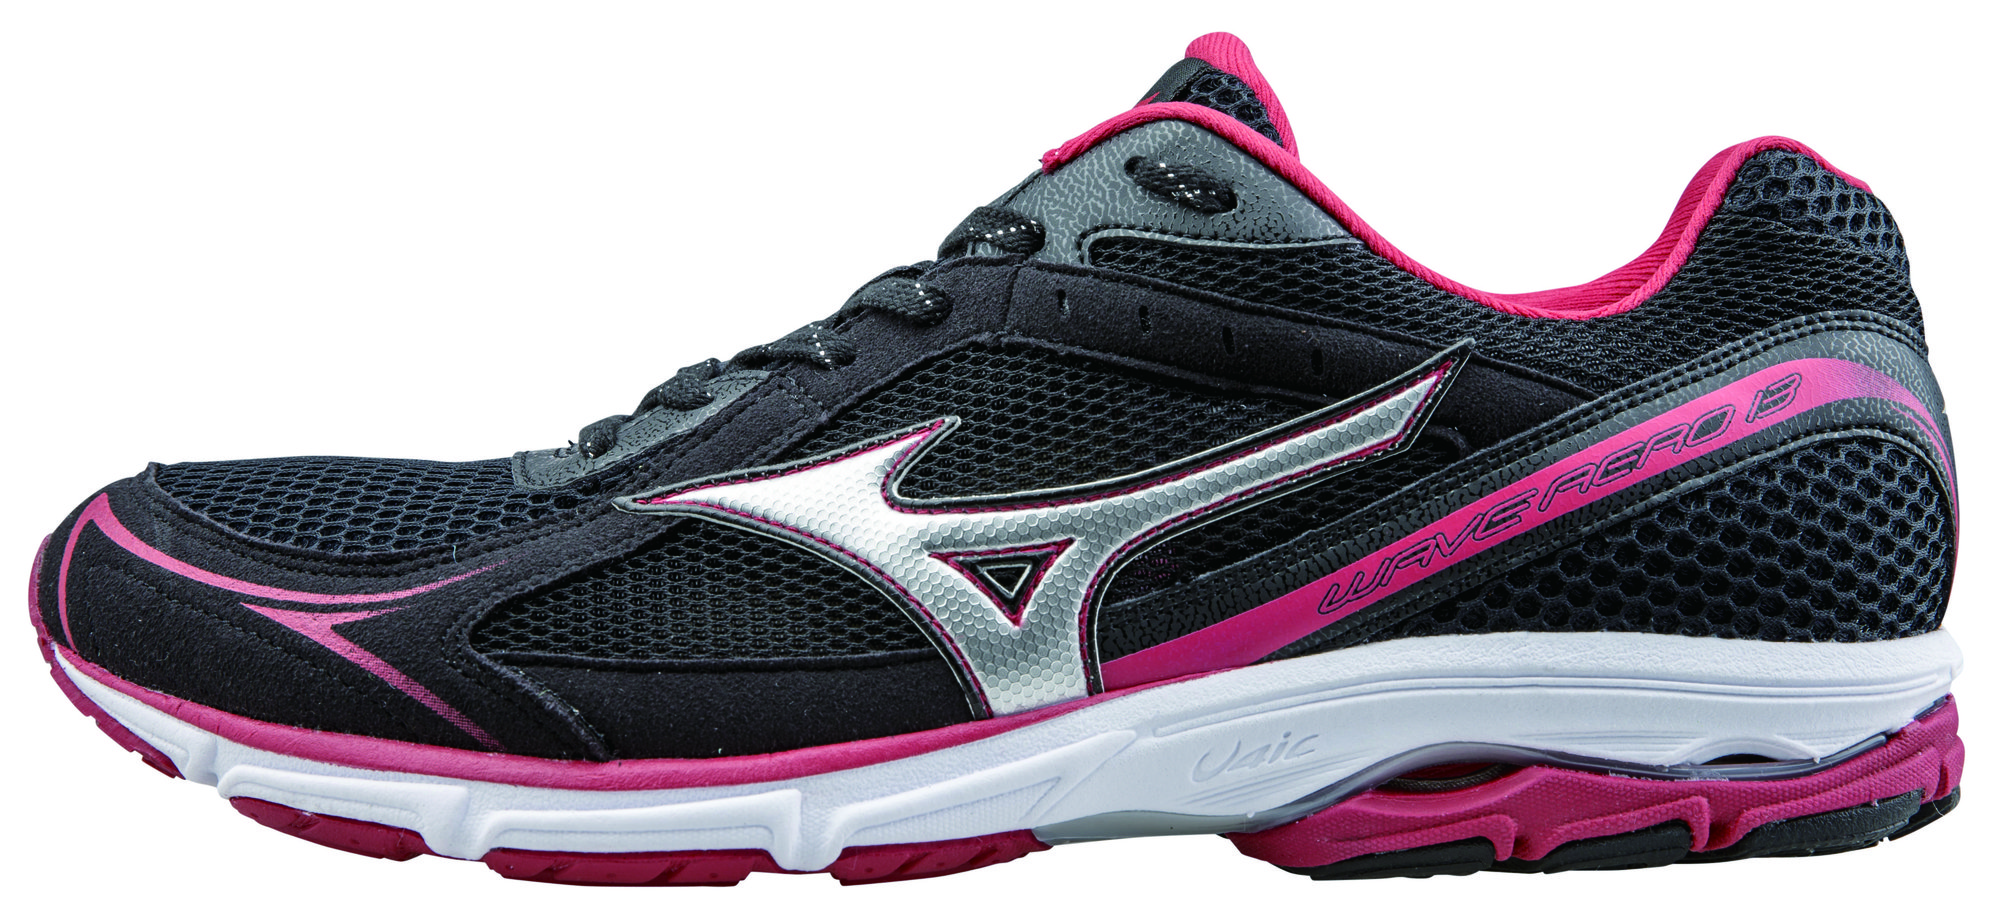 Mizuno Lady Wave Aero 13 in Grün